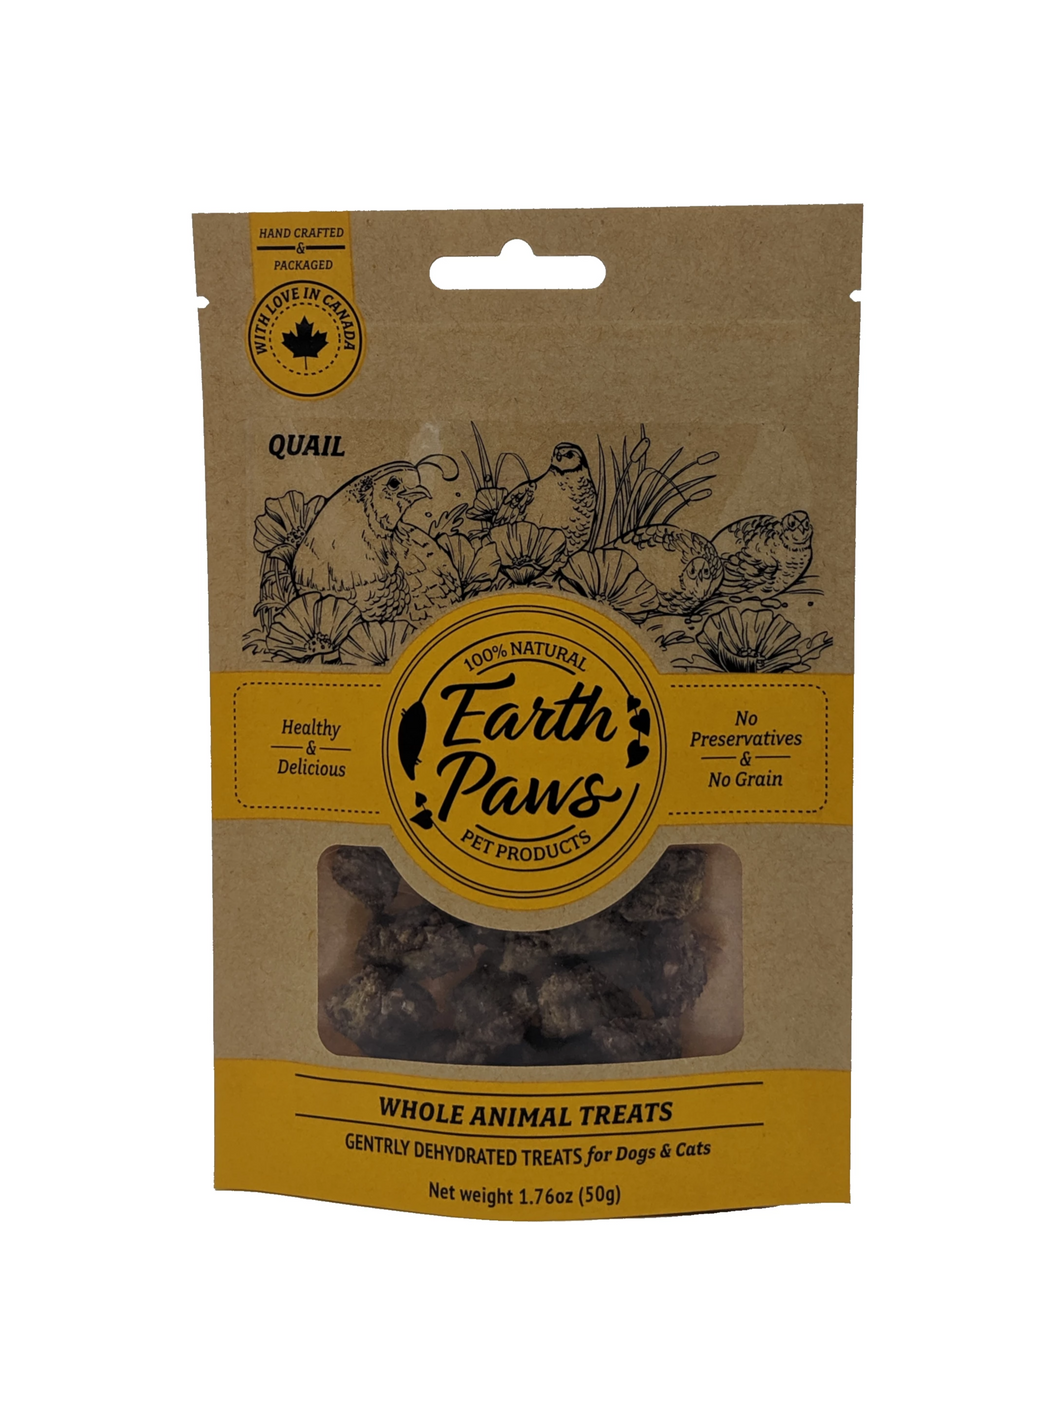 Whole Animal Treats (Quail) - Earth Paws Pet Products